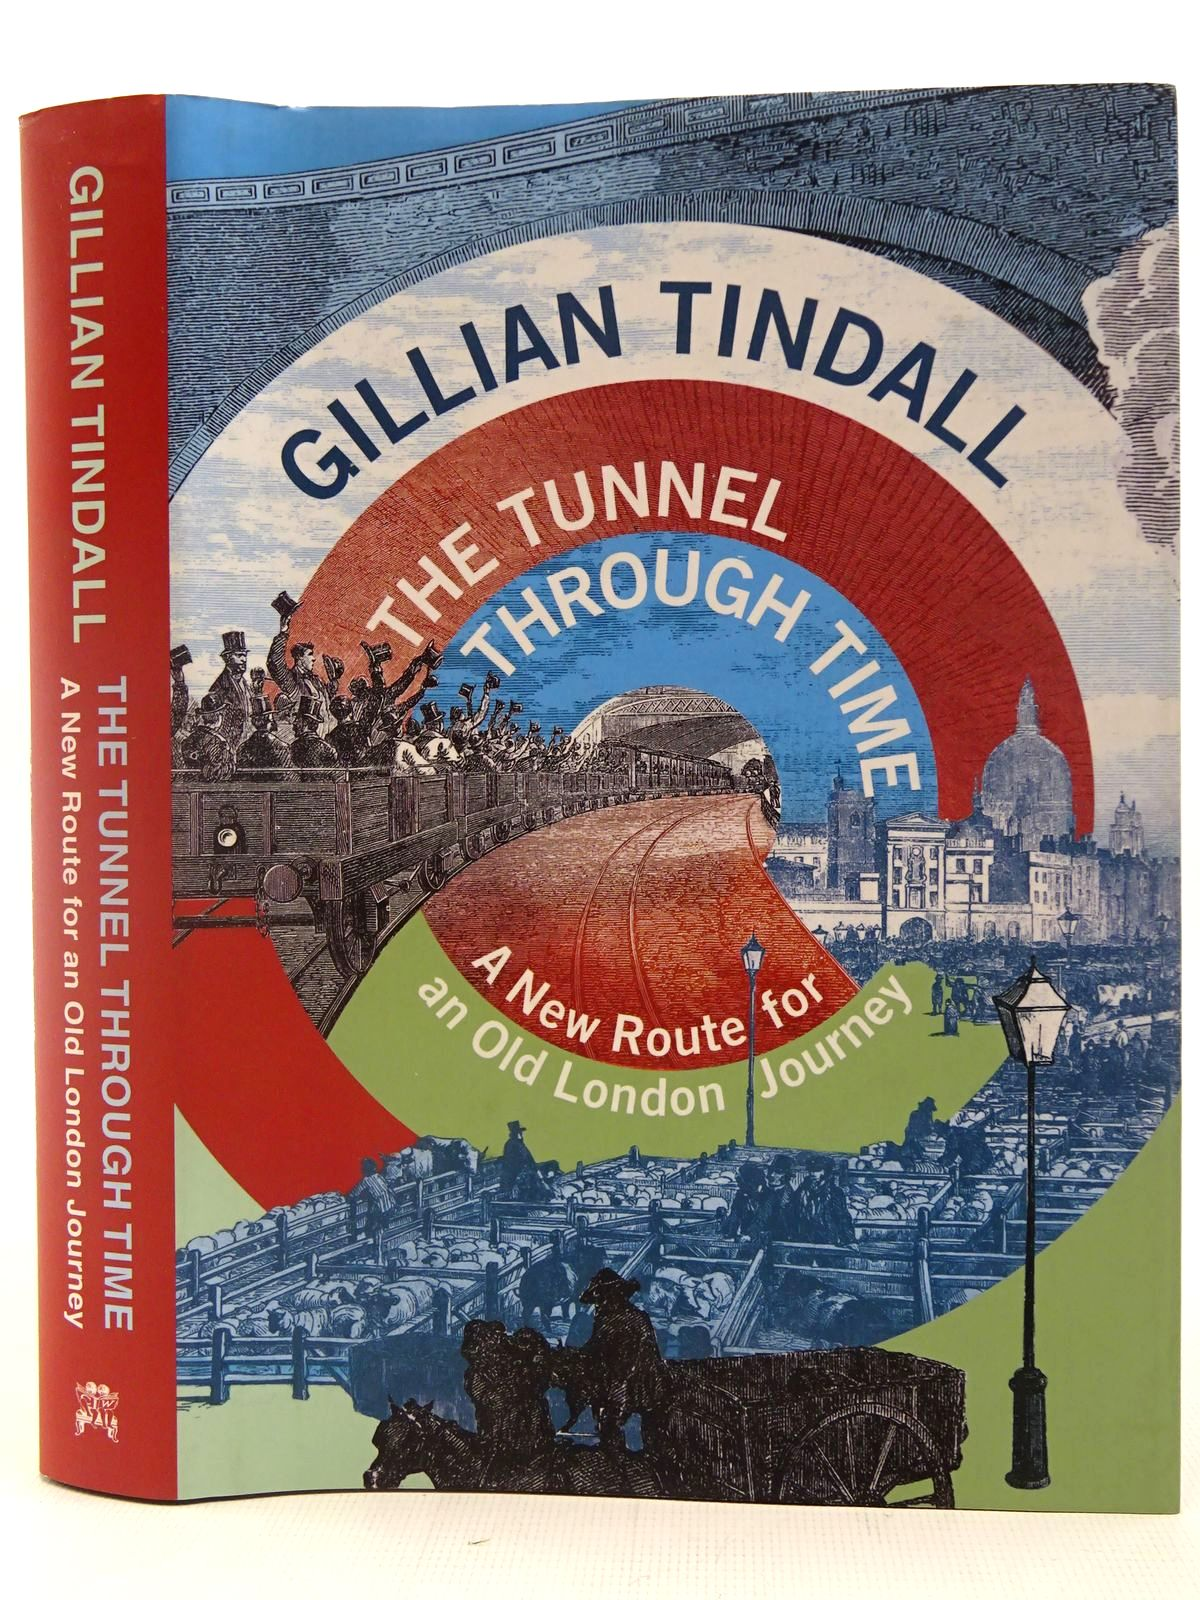 Photo of THE TUNNEL THROUGH TIME A NEW ROUTE FOR AN OLD LONDON JOURNEY written by Tindall, Gillian published by Chatto & Windus (STOCK CODE: 2127136)  for sale by Stella & Rose's Books